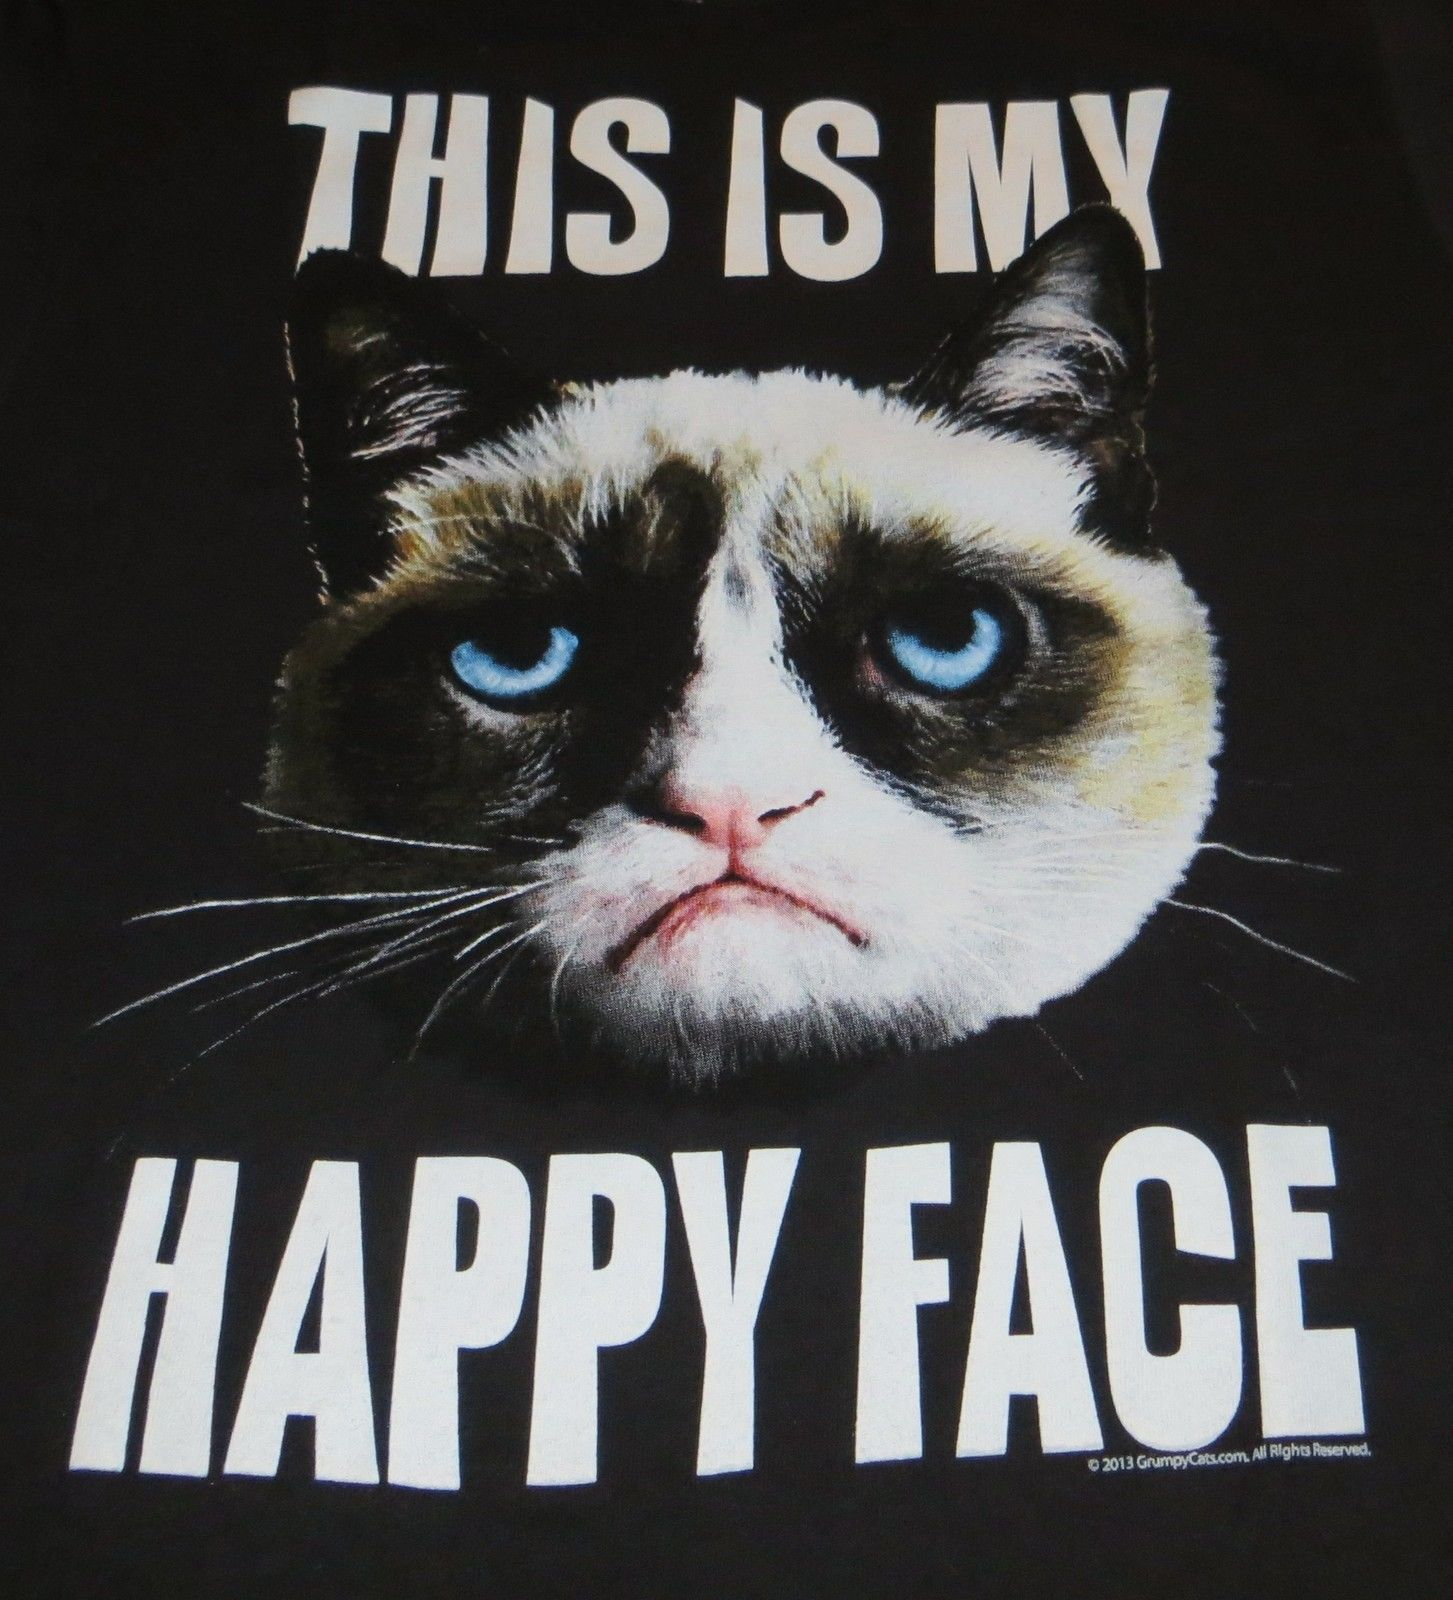 GRUMPY CAT THIS IS MY HAPPY FACE L LARGE TSHIRT NEW